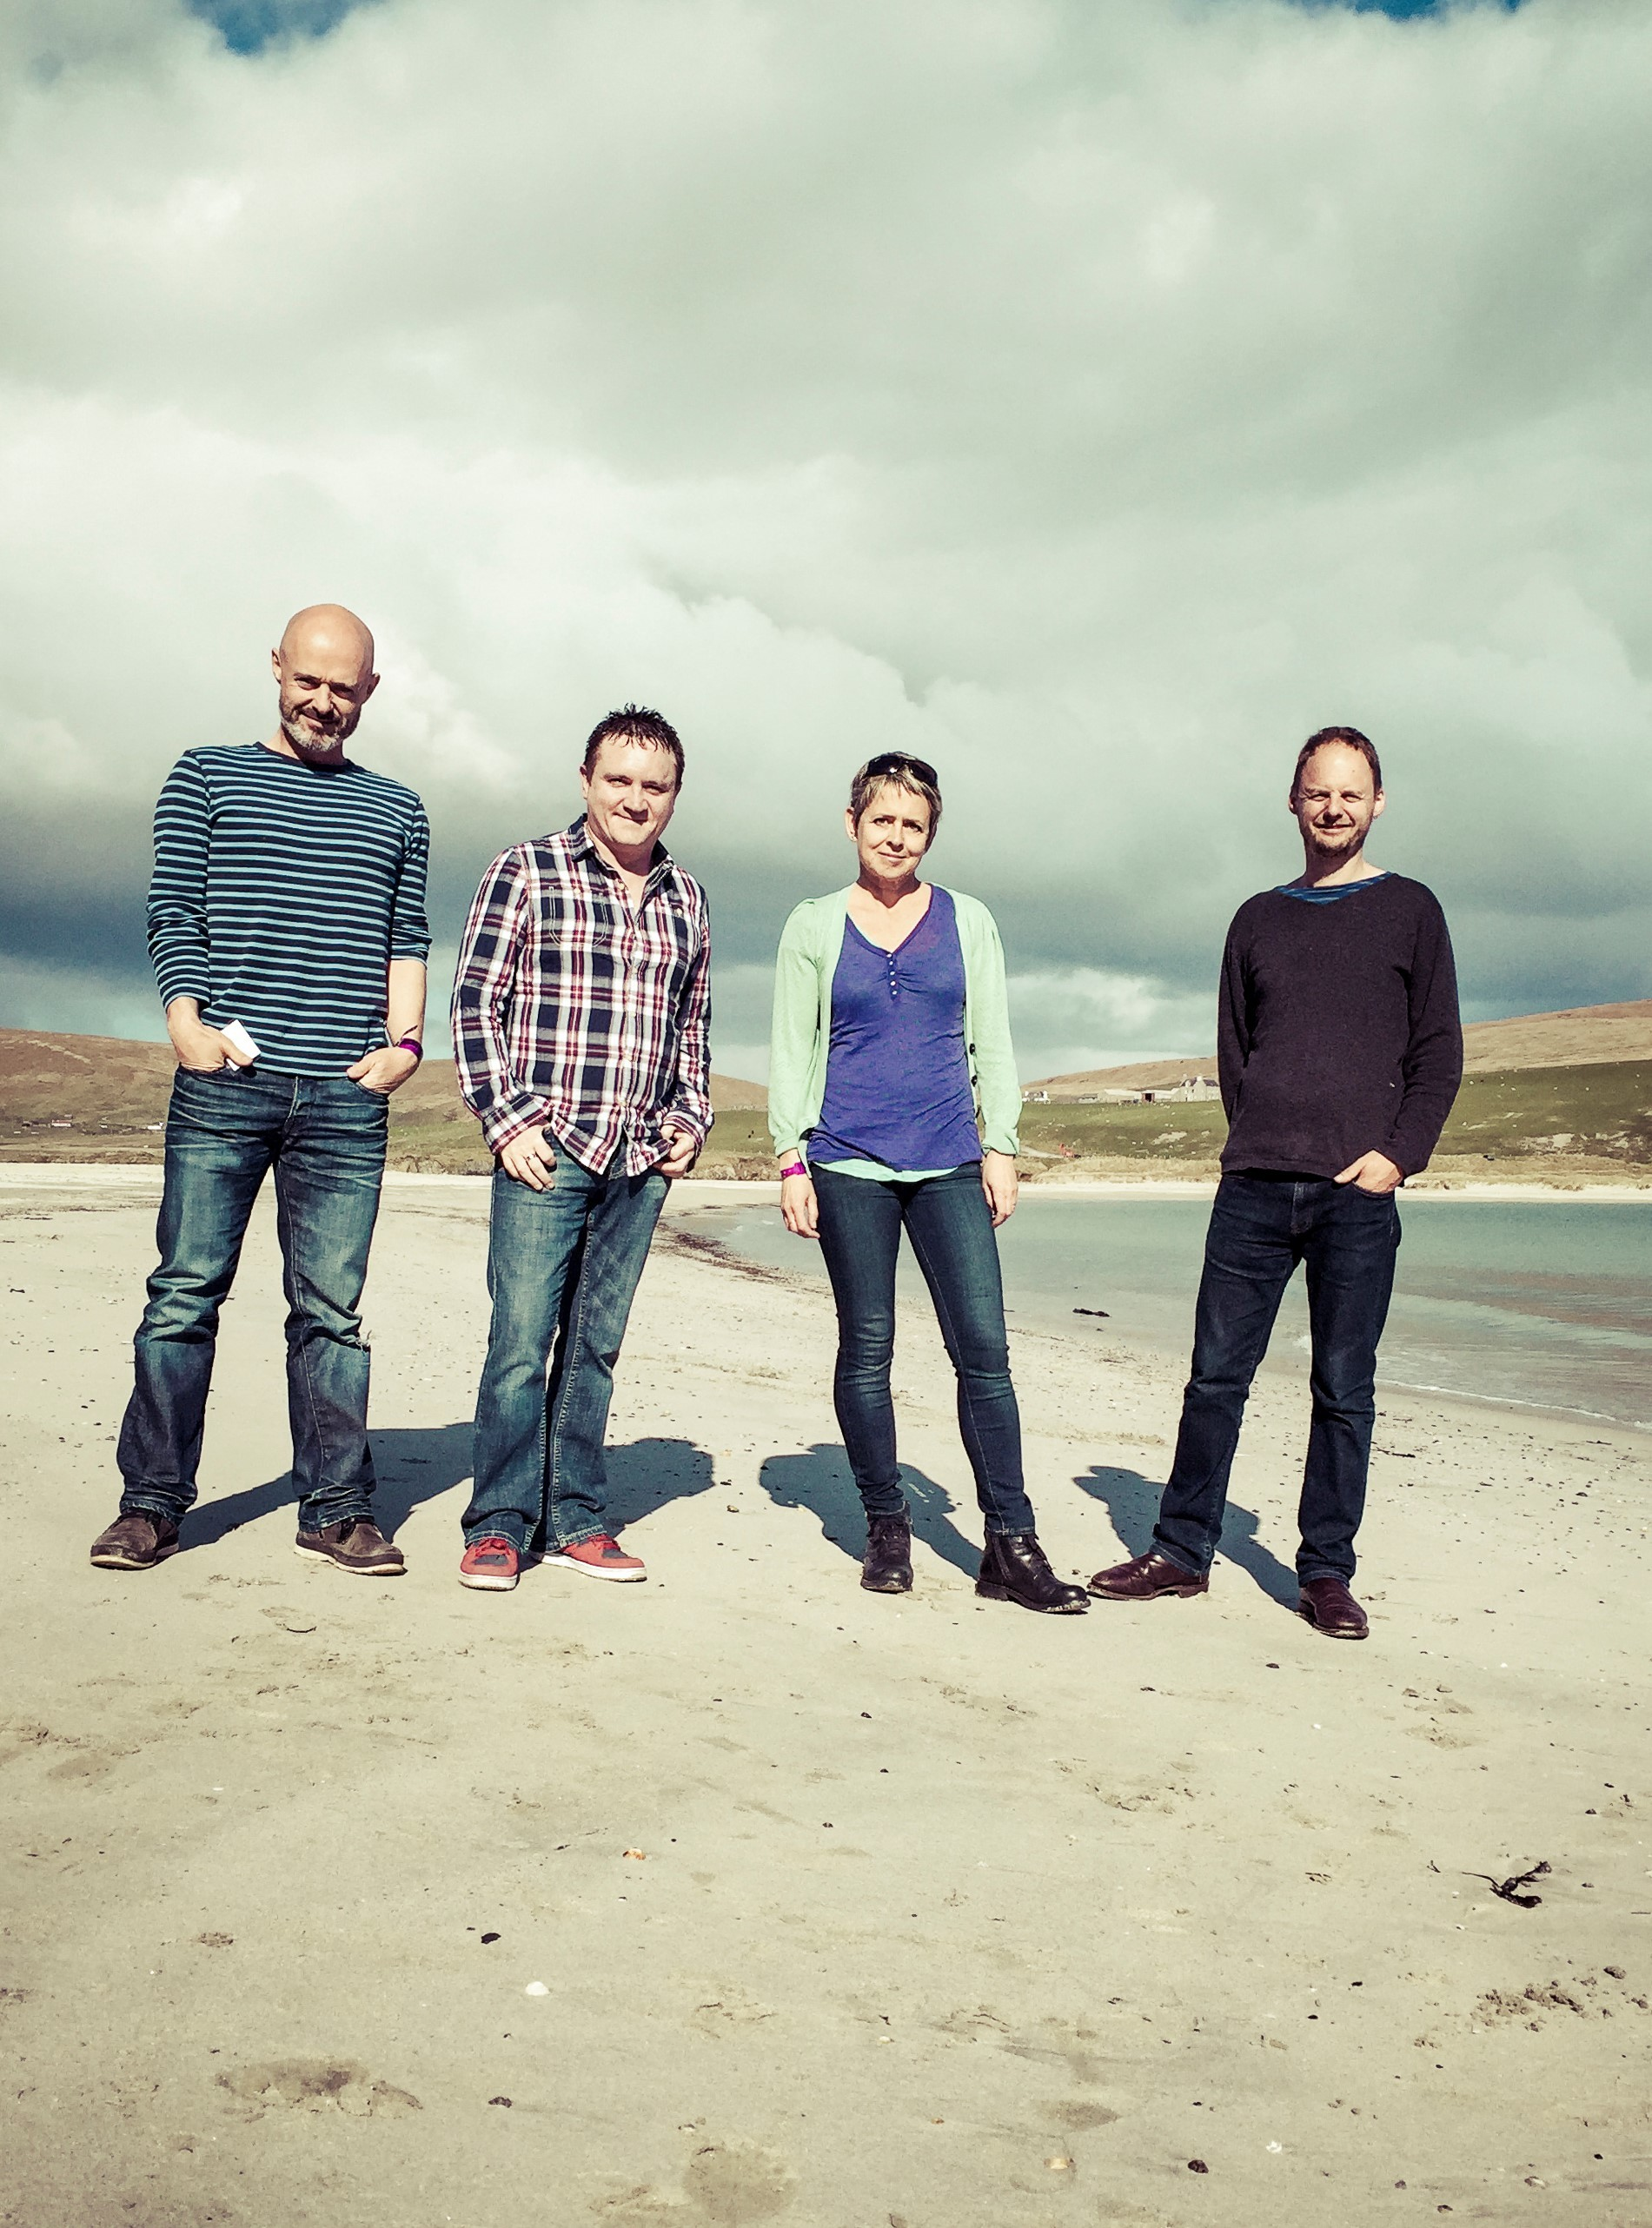 PERFORMERS: See talented folk rock band in South Petherton